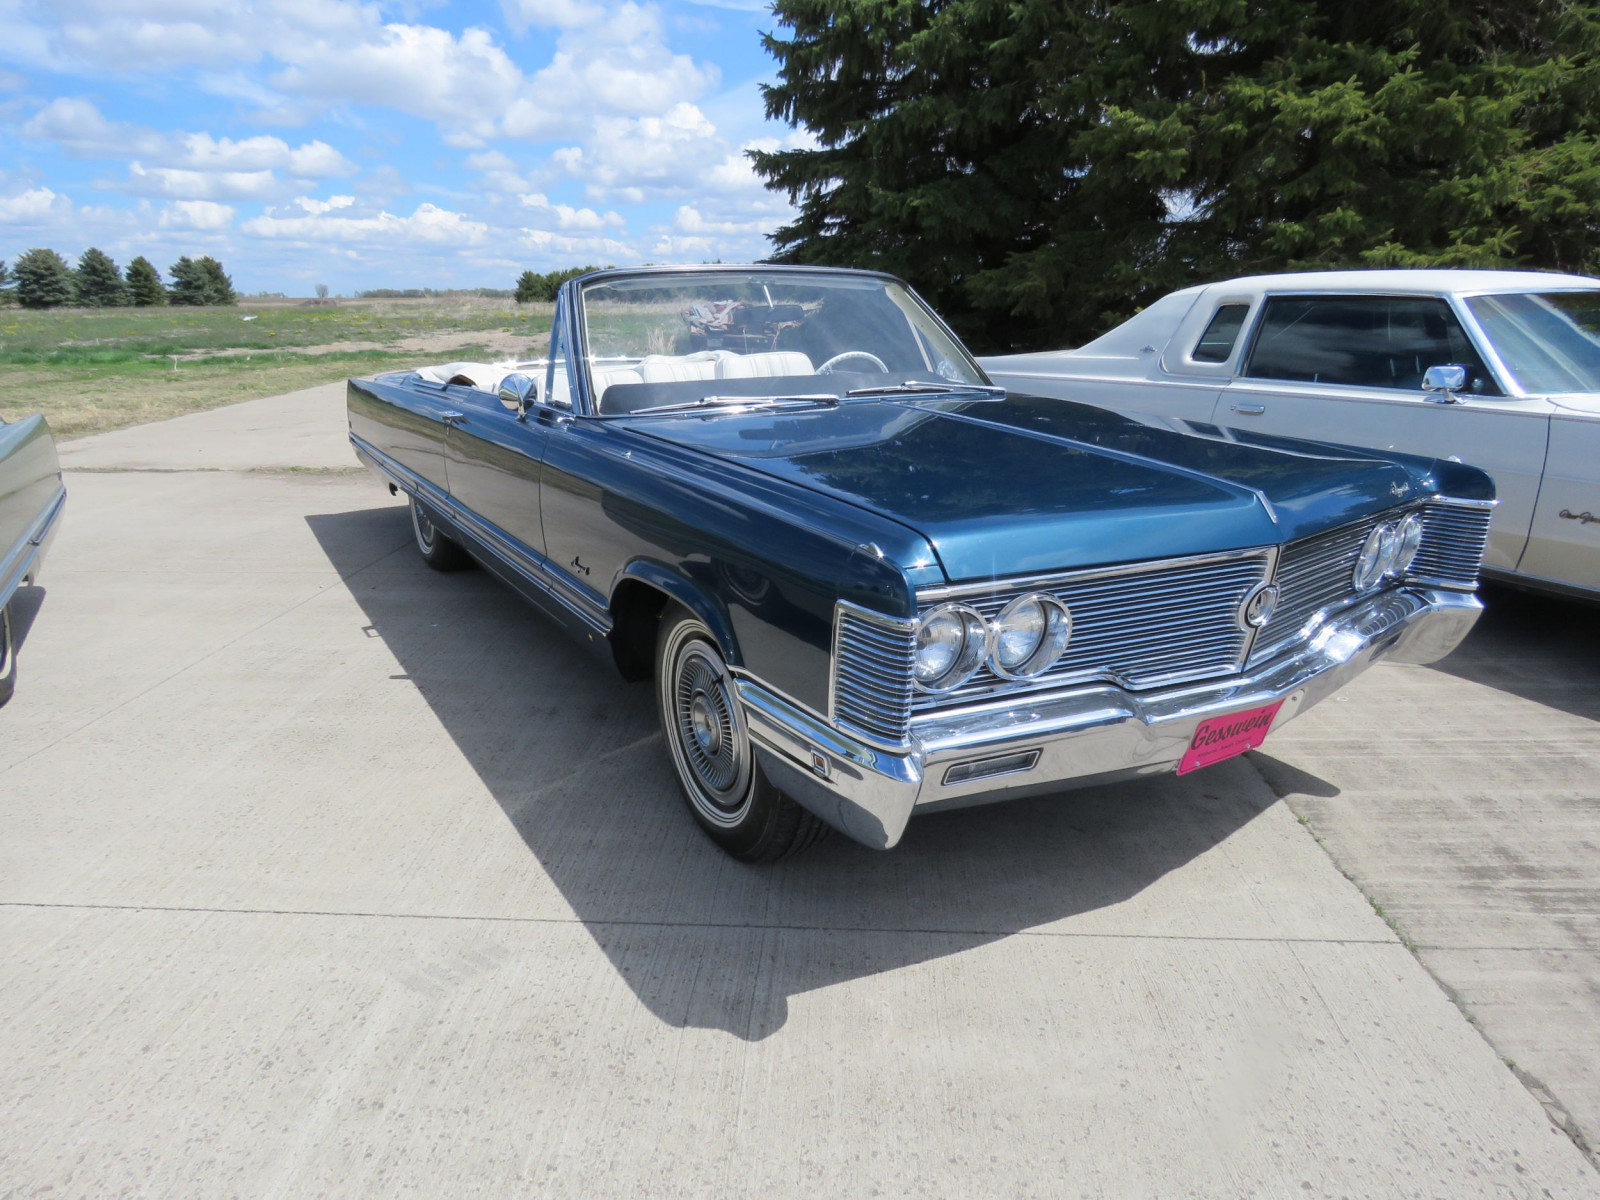 1968 Chrysler Imperial Crown Convertible - Image 3